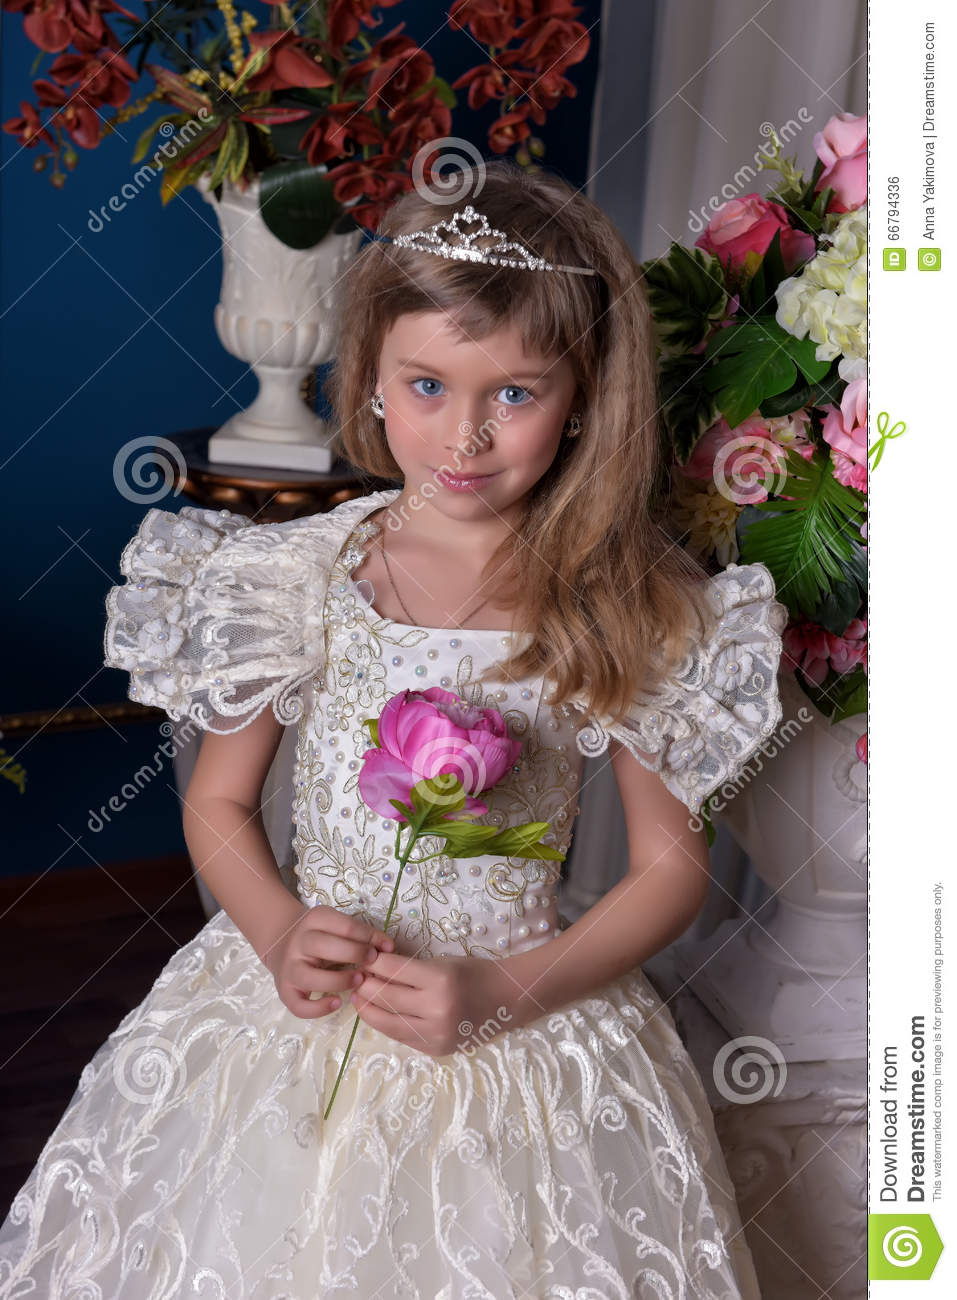 Young Princess In A White Dress With A Tiara On Her Head Stock Photo